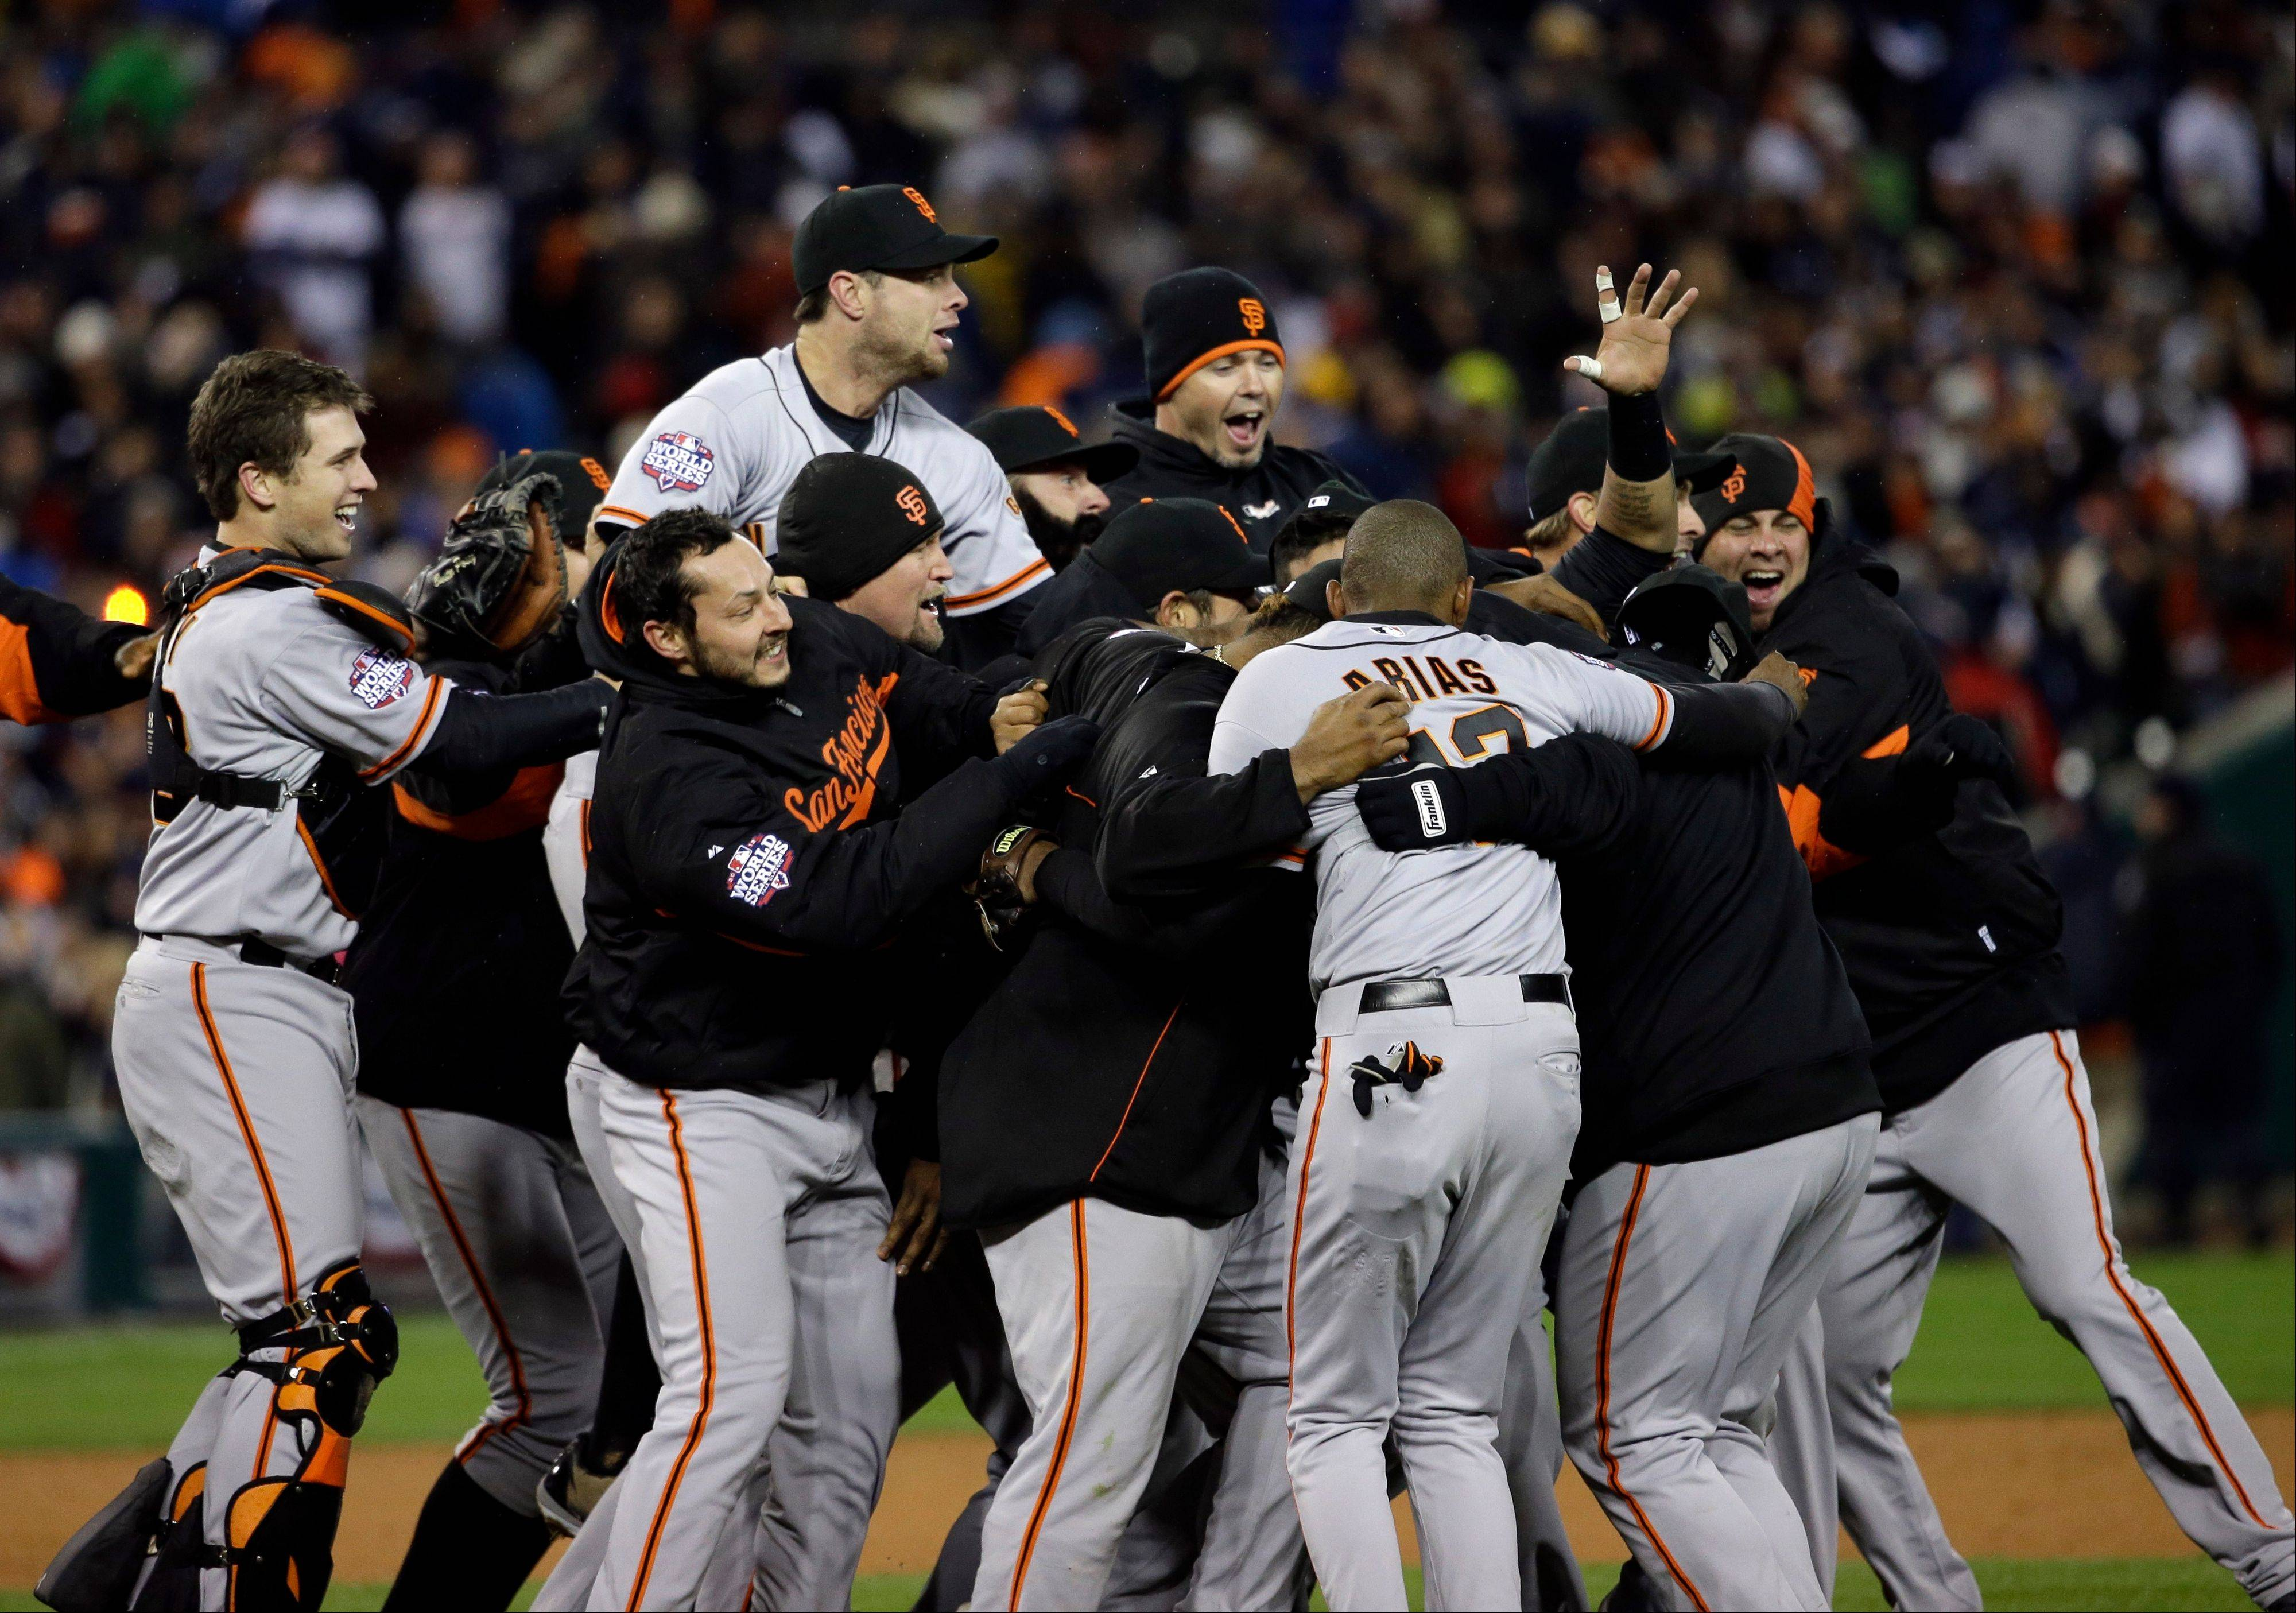 San Francisco Giants celebrate after winning Game 4 of baseball's World Series against the Detroit Tigers Sunday, Oct. 28, 2012, in Detroit. The Giants won 4-3 to win the series.